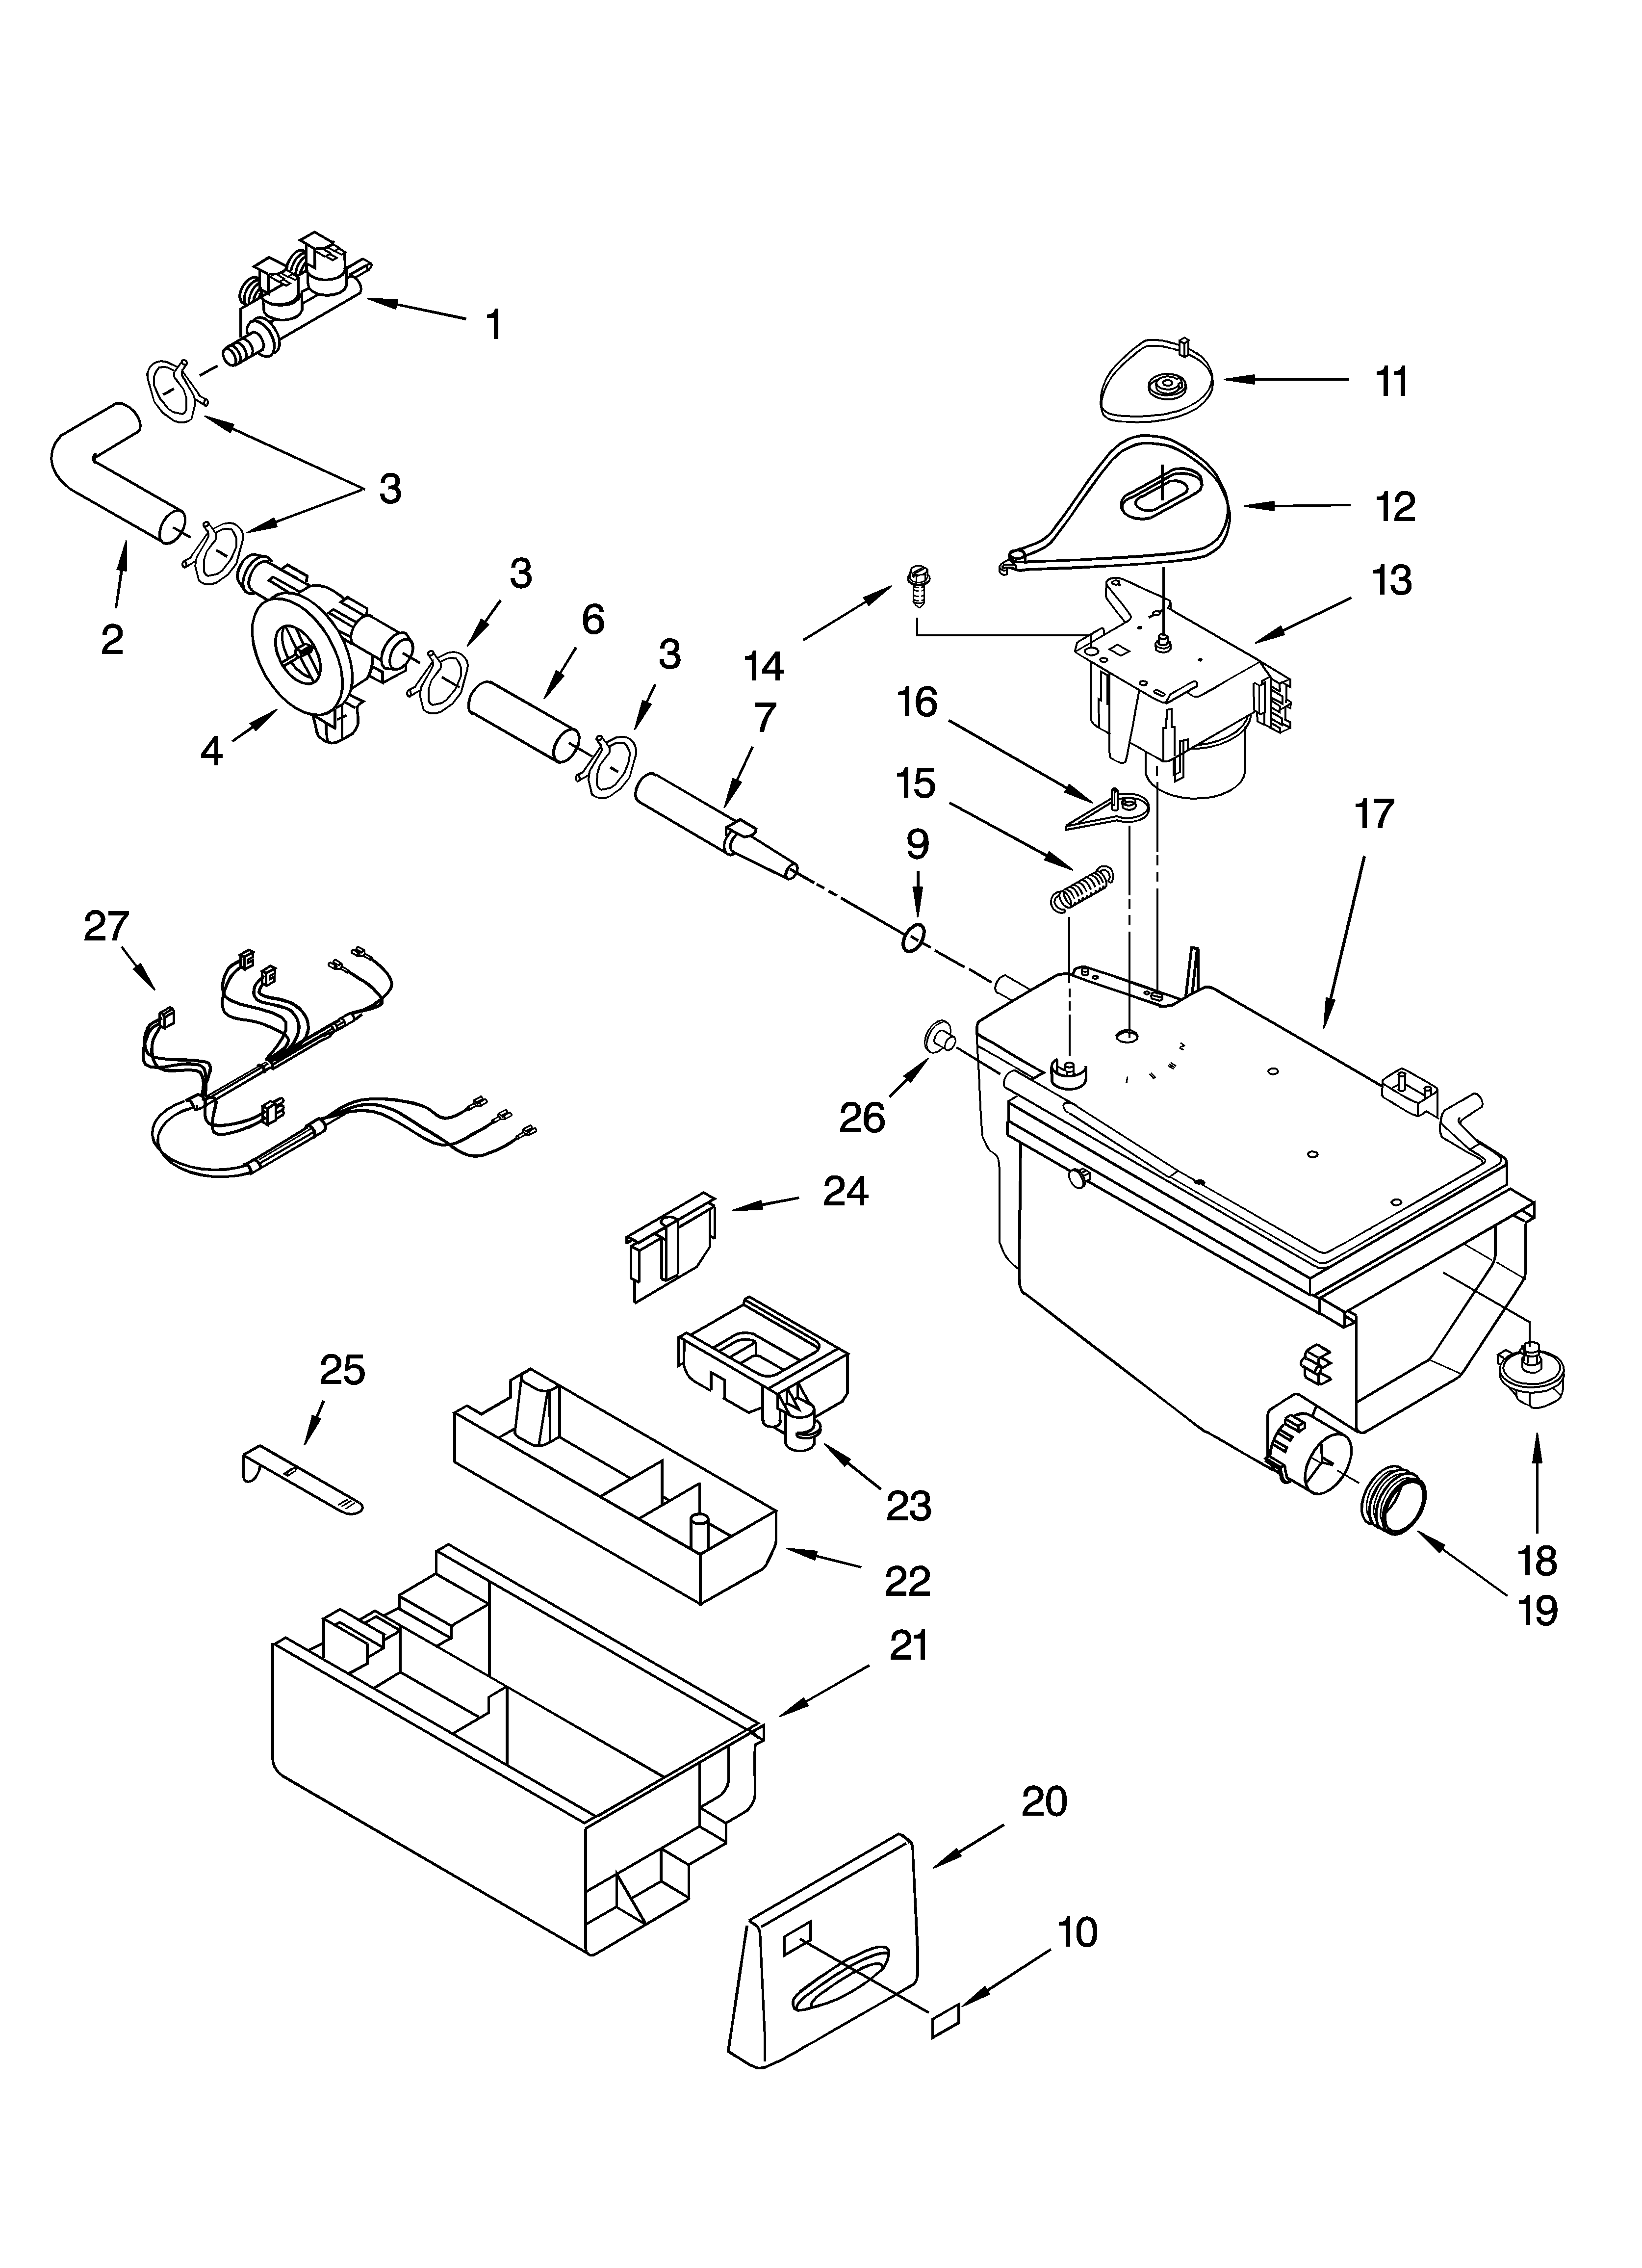 Kenmore He4t Washer Parts Diagram